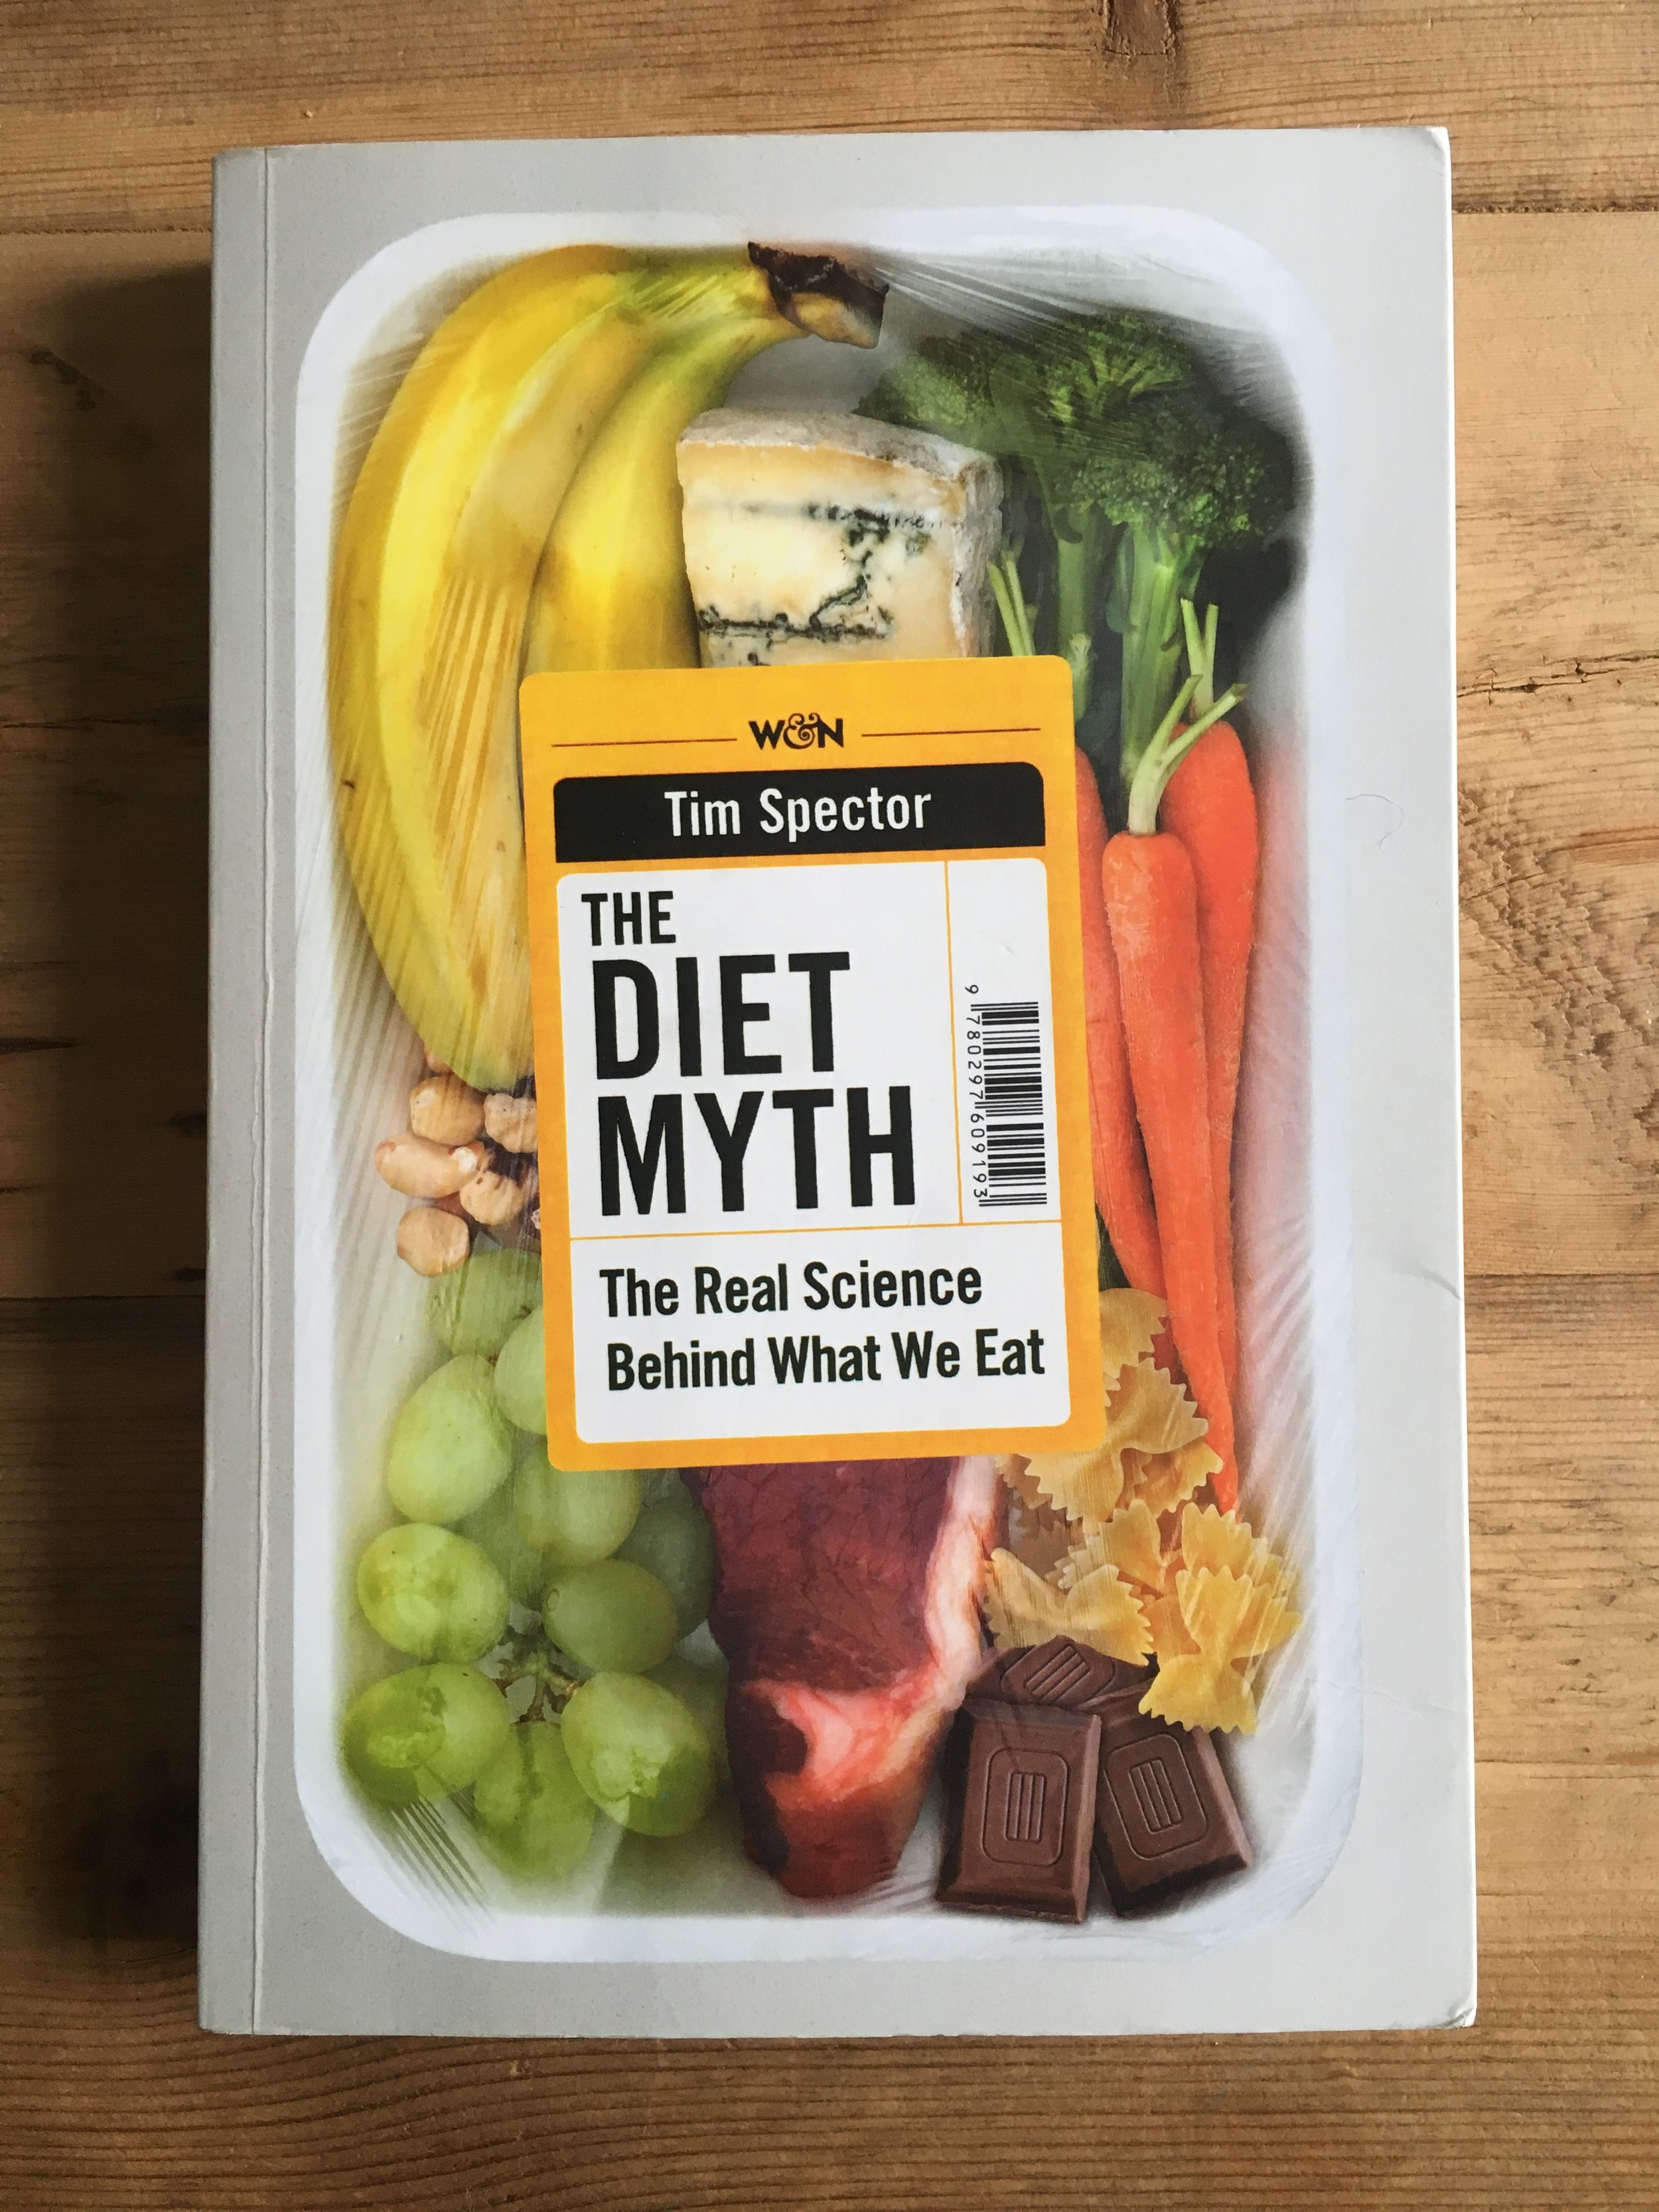 The Diet Myth - Tim Spector heads up the British Gut Project and has done fascinating research into the human biome - the vast ecosystem of bacteria and microbes living on and in us which we rely on for our survival. This book is a must-read for anyone interested in food and health.